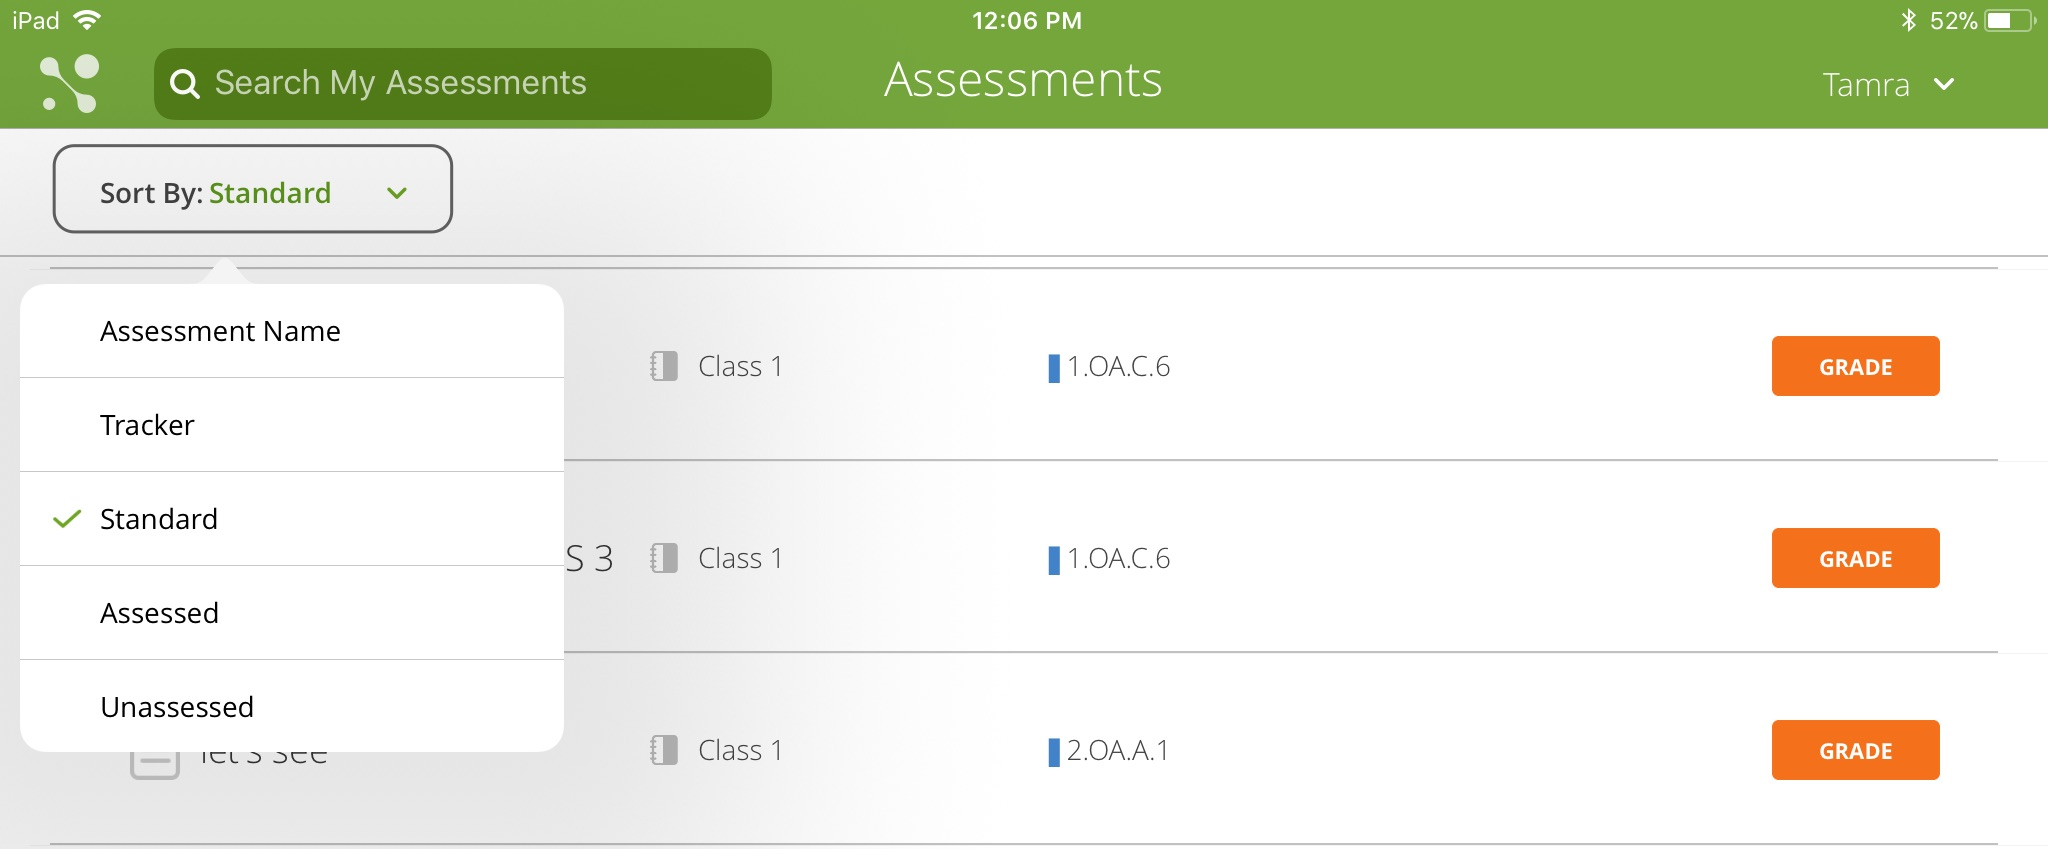 Assessments Sort By